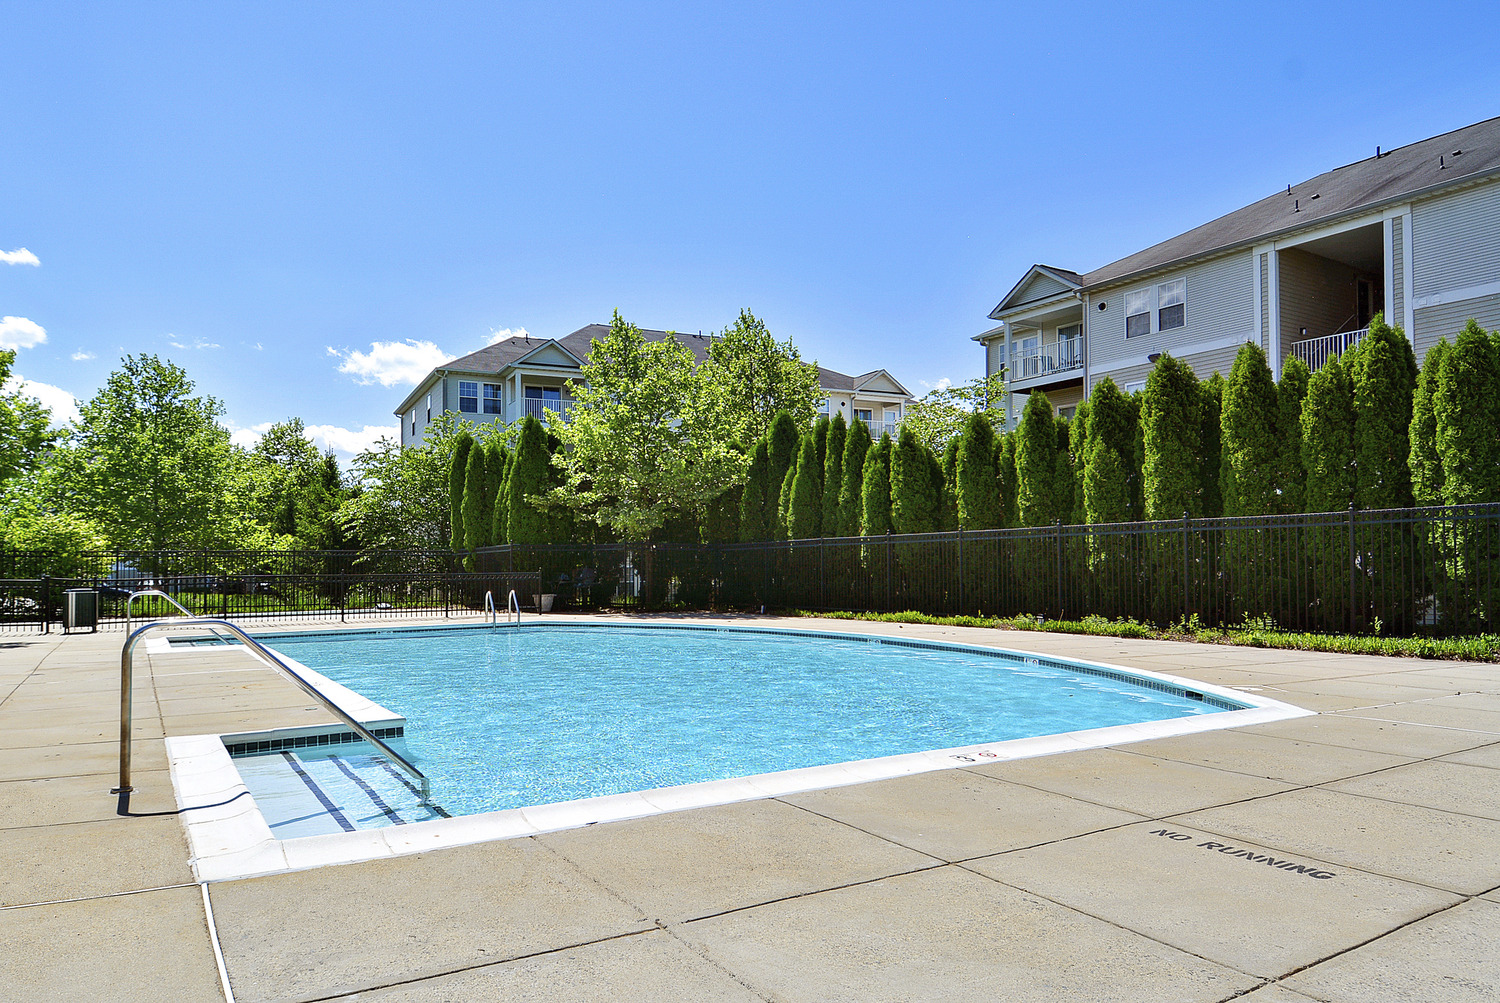 CBG builds Ashburn Meadows Phase I, a 176-Unit Garden-Style Affordable Apartment Community in Ashburn, VA - Image #2